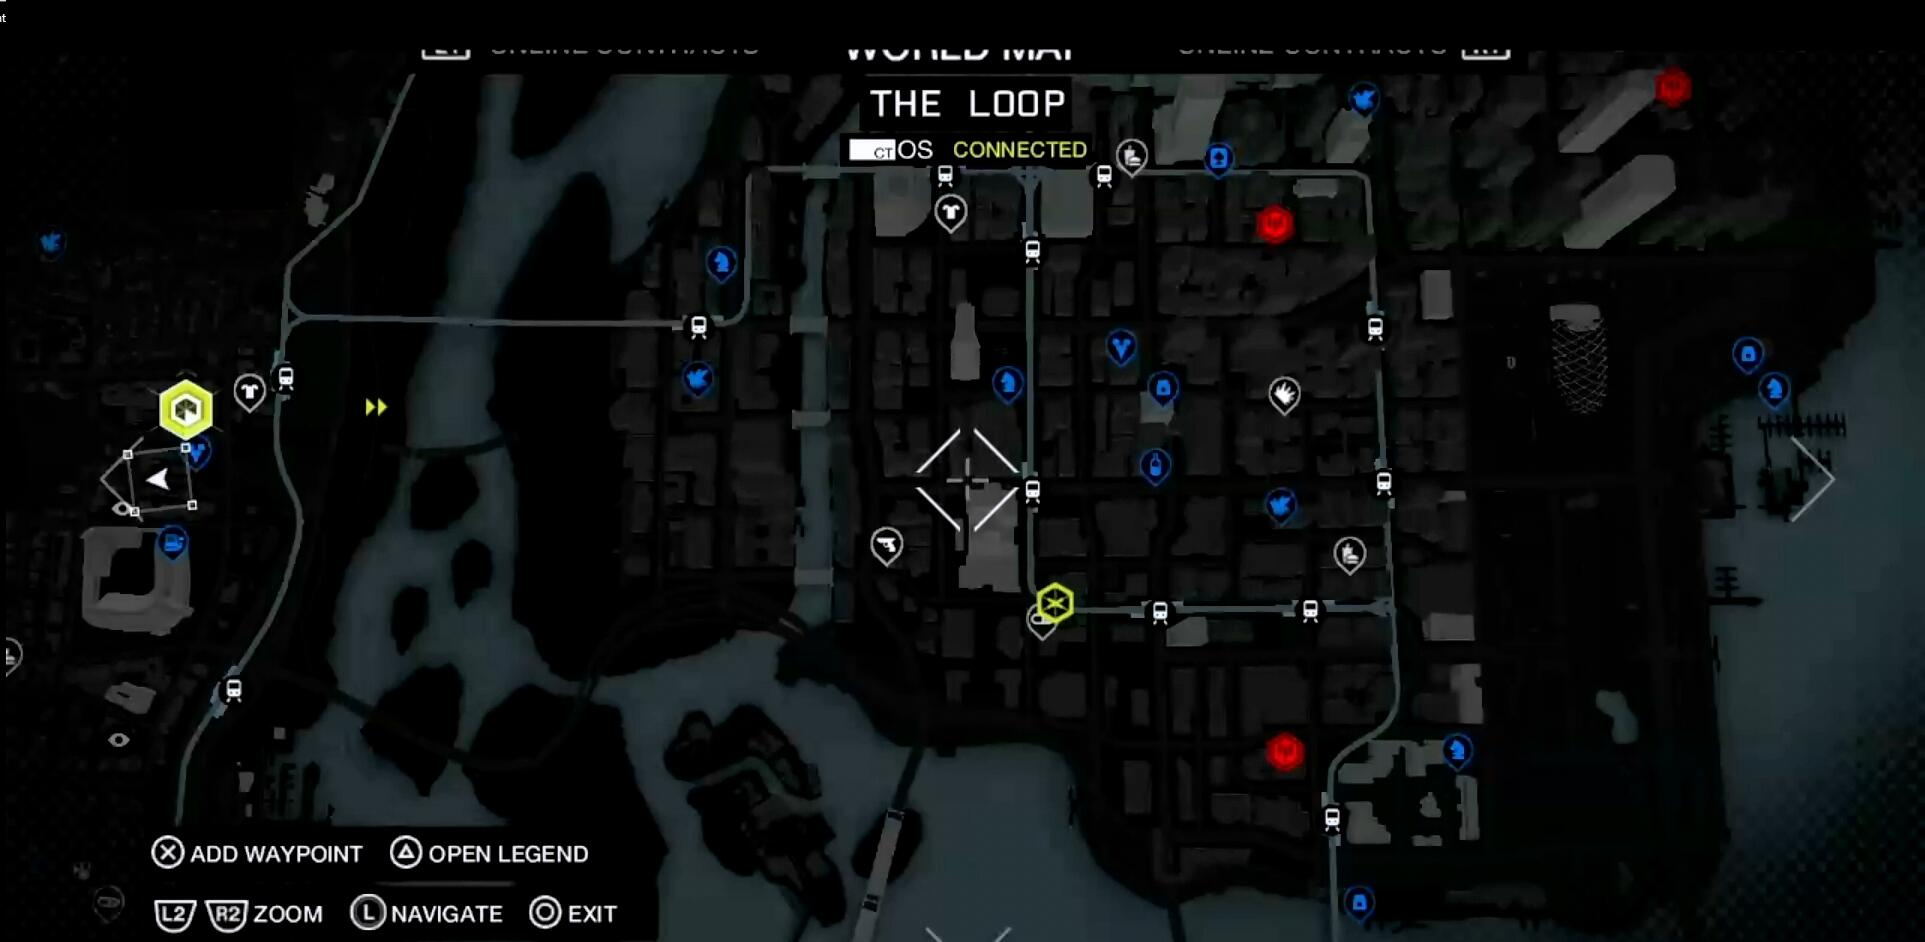 Did Ubisoft just announce a new game in Watch Dogs 2?